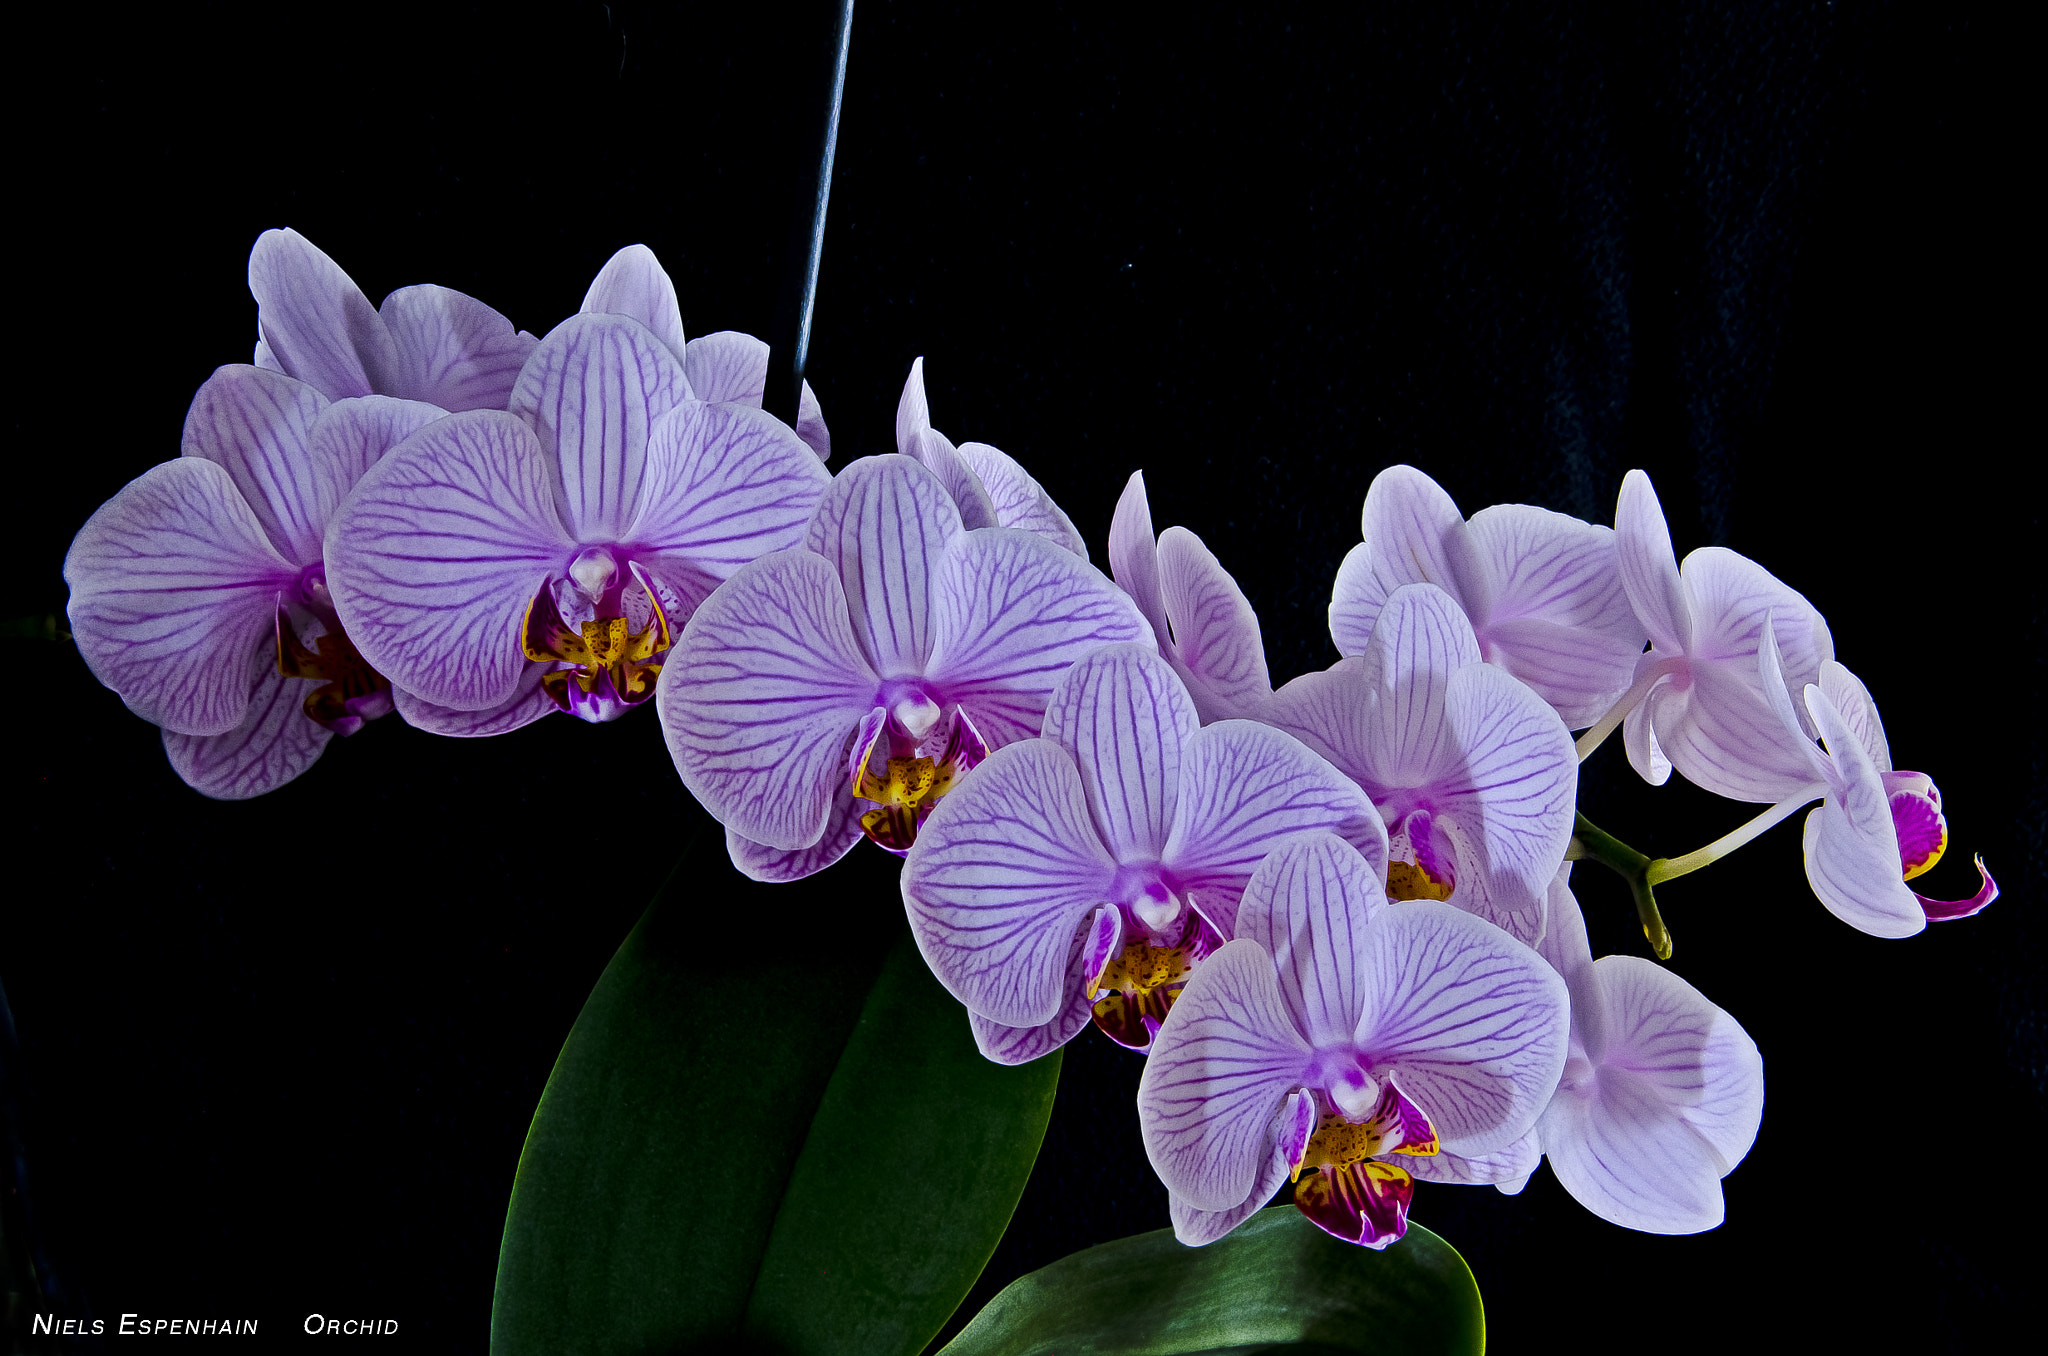 Photograph Orchid by Niels Espenhain on 500px